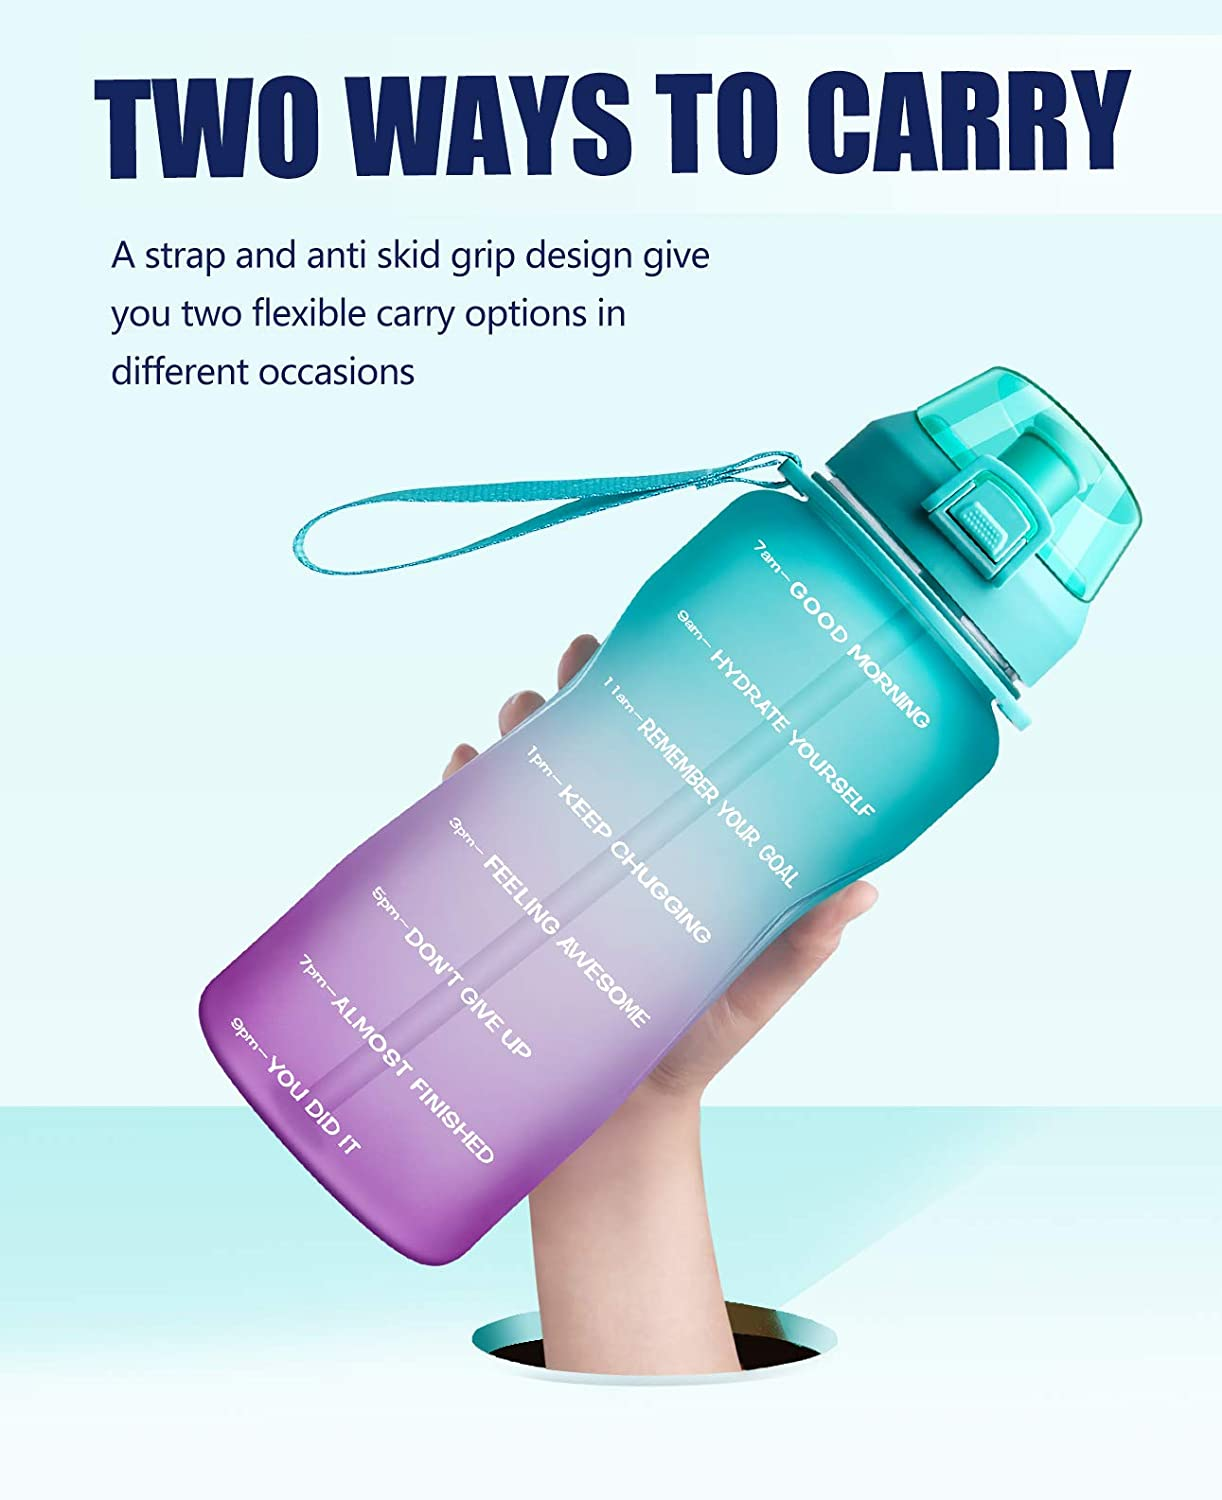 Fidus Large Half Gallon/64oz Motivational Water Bottle with Time Marker & Straw, Leakproof Tritan BPA Free Water Jug, Ensure You Drink Enough Water Daily for Fitness, Gym and Outdoor Sports : Sports & Outdoors